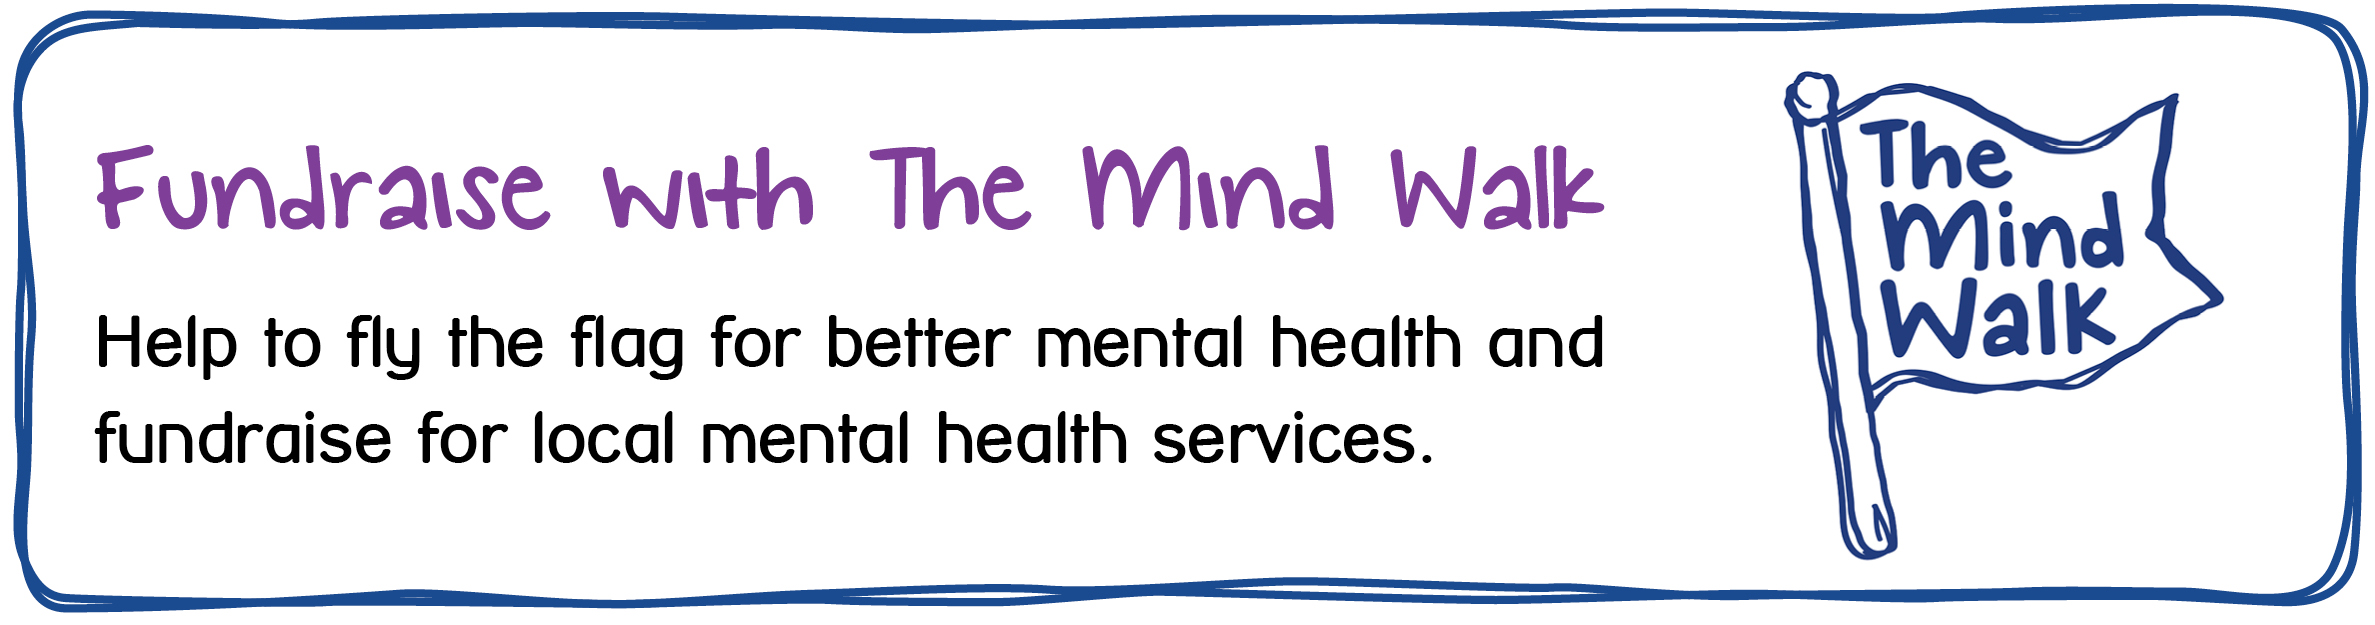 Fundraise with The Mind Walk. Help to fly the flag for better mental health and fundraise for local mental health services.